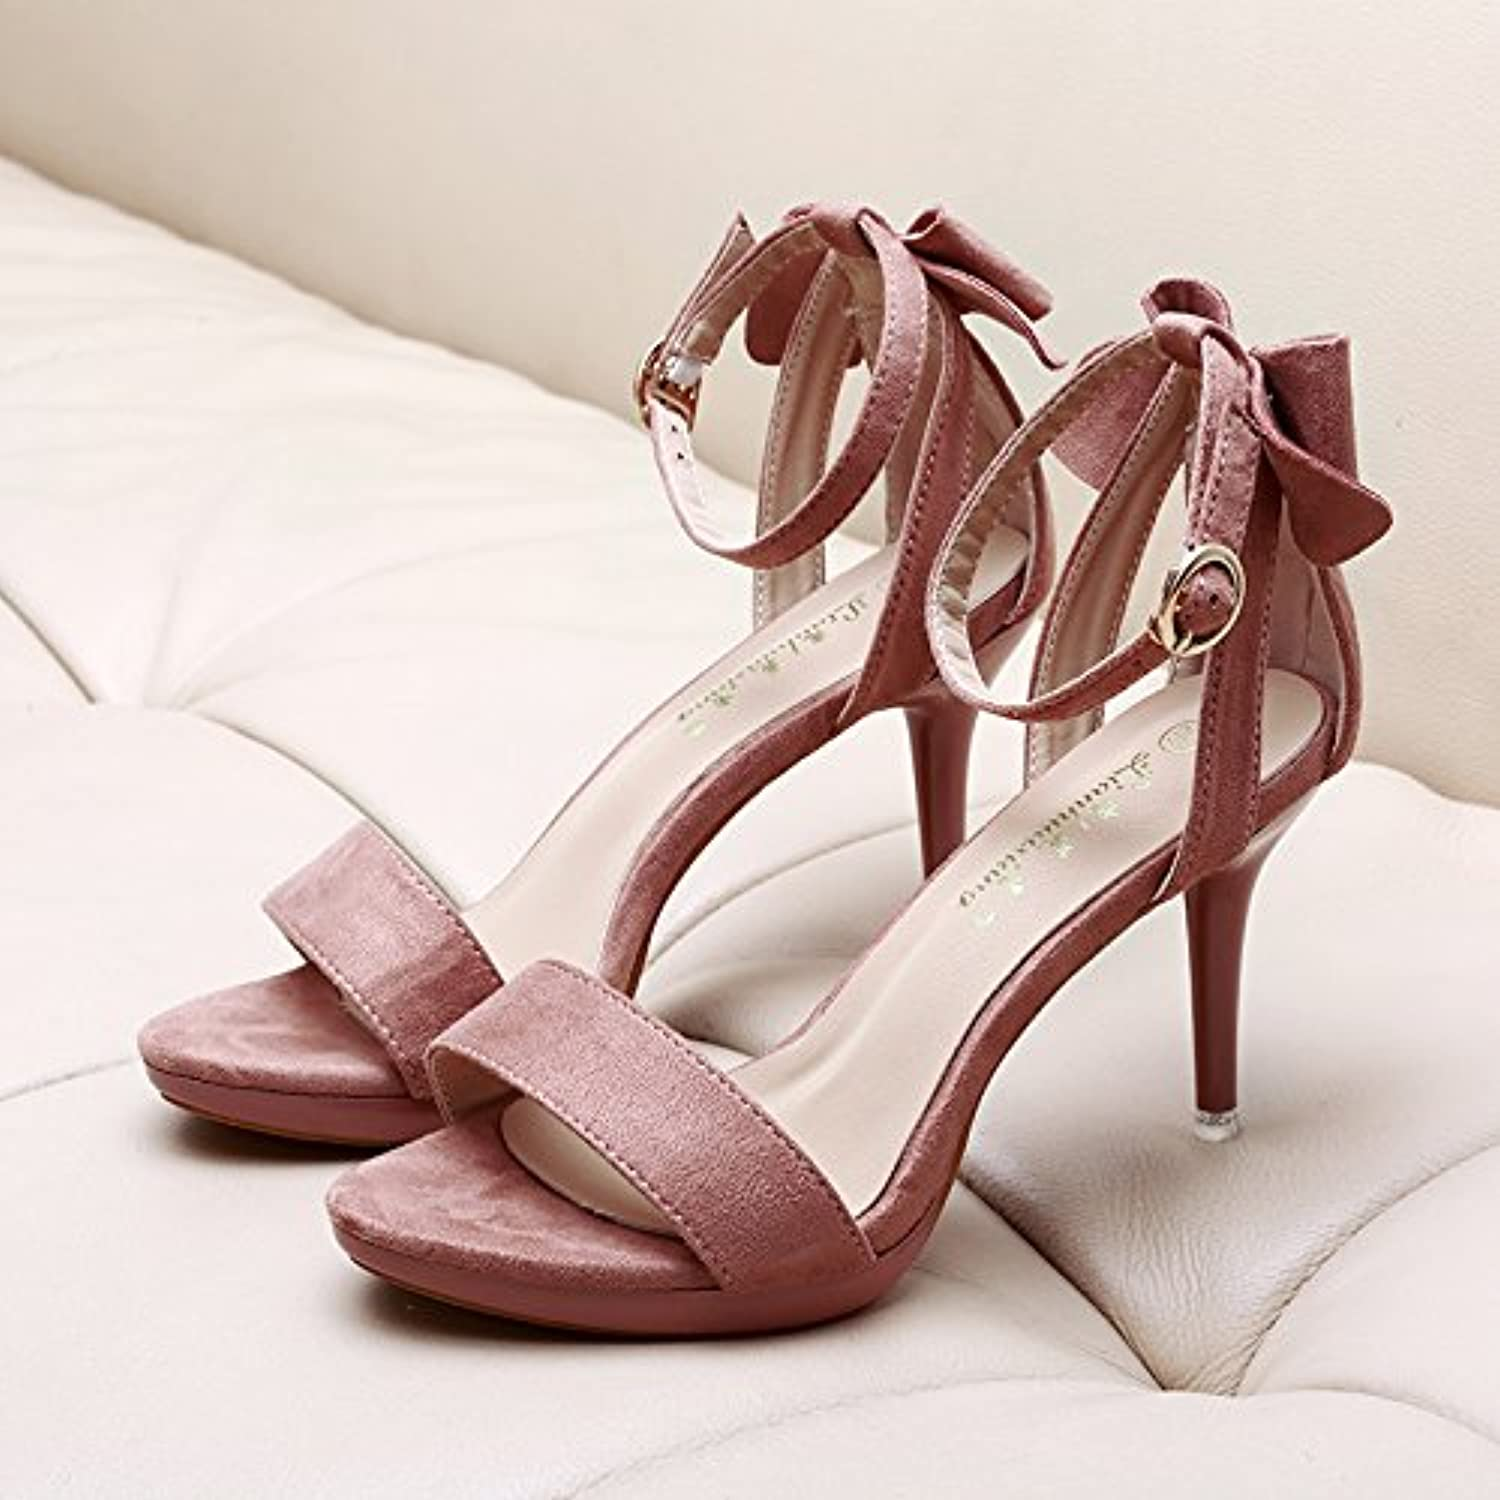 AGECC High Heel Shoes with Thin Waterproof Tables Bow Tie Suede Professional Toe Fairy and Sandals. Thirty-Five...